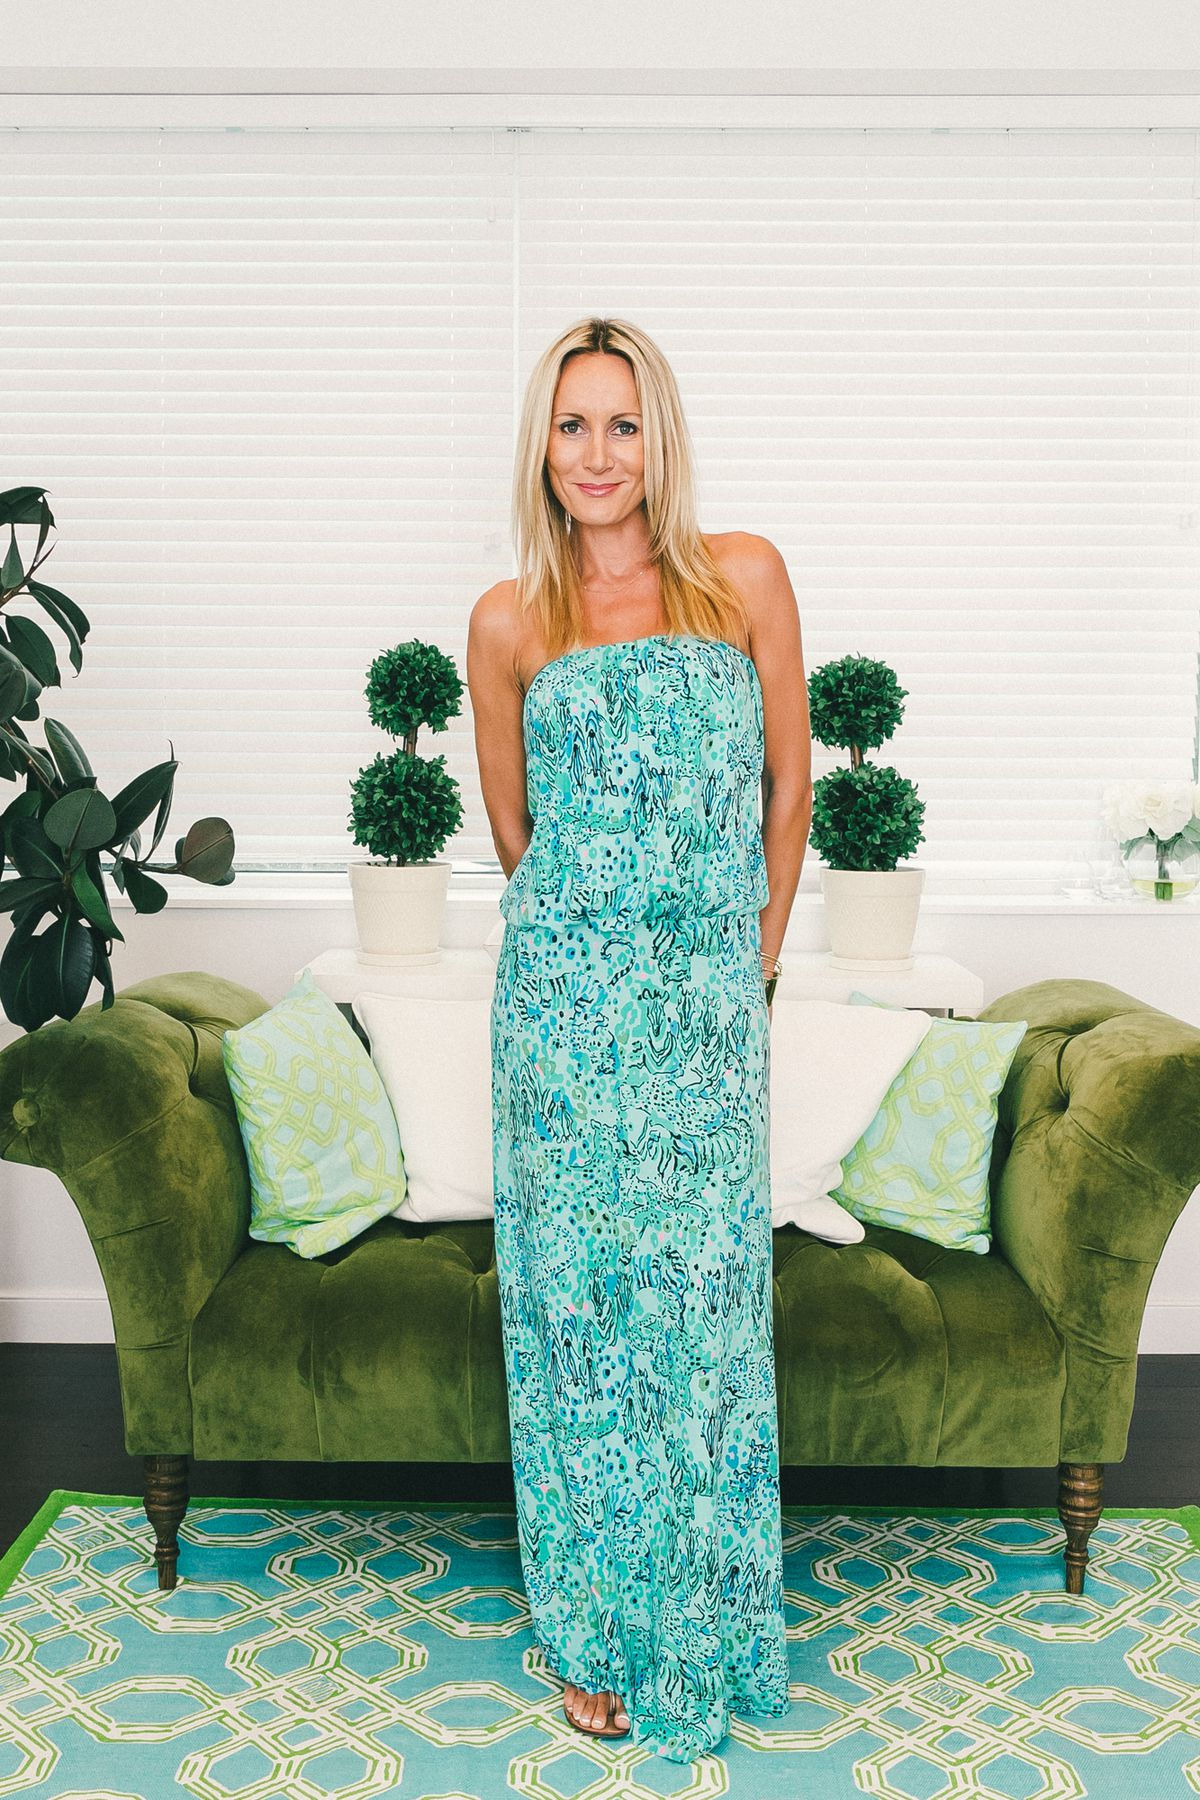 What the Lilly Pulitzer Team Wears to Work (Color! Prints!) - Racked